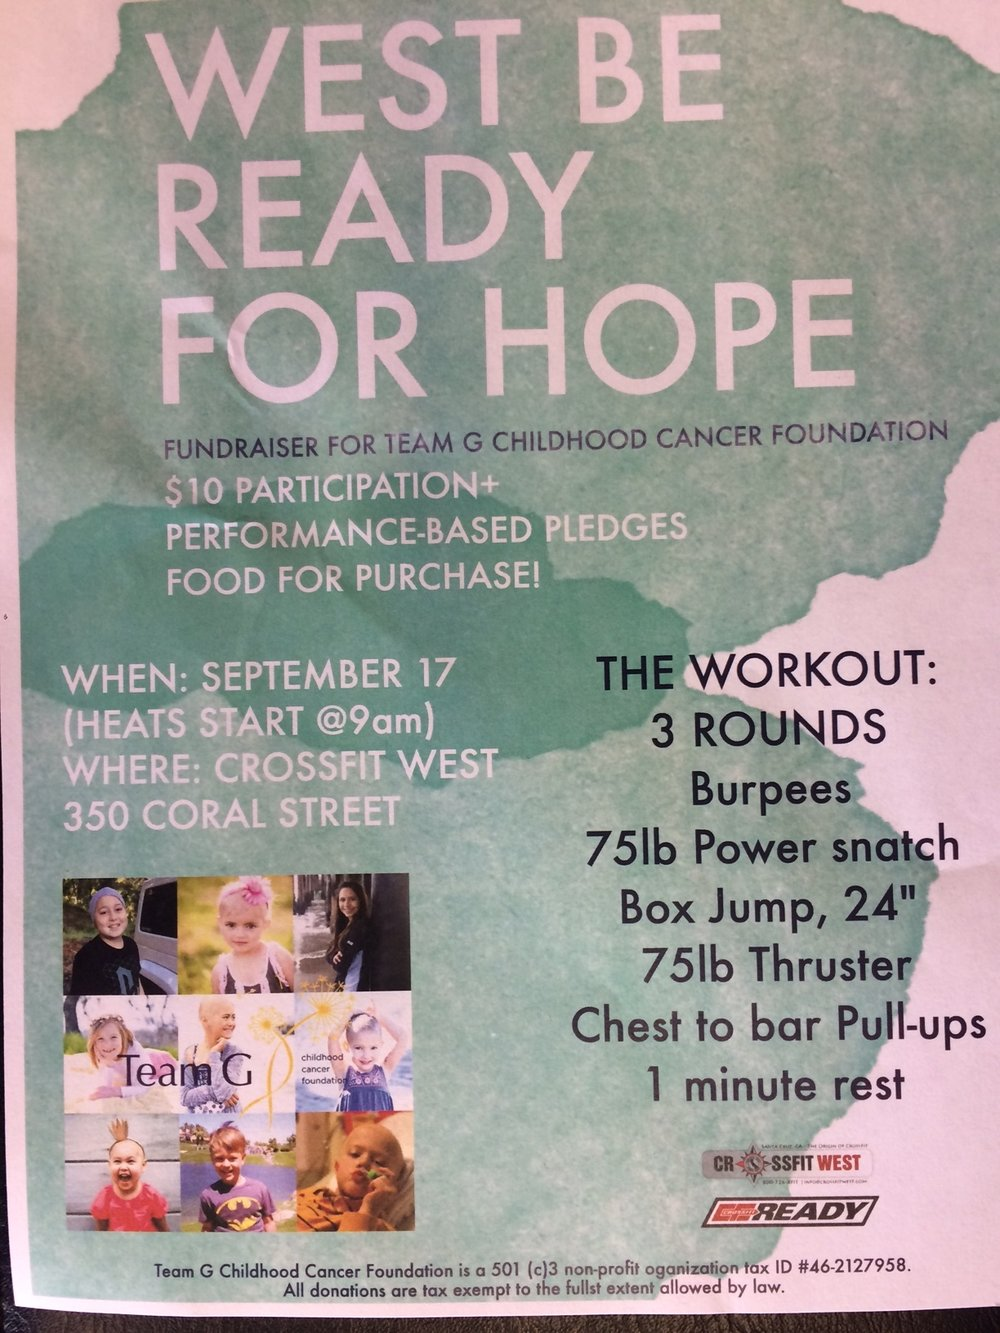 Crossfit West/Ready is holding a fundraiser this weekend to support the Childhood Cancer Foundation. You can either go out and support, or just give a donation!